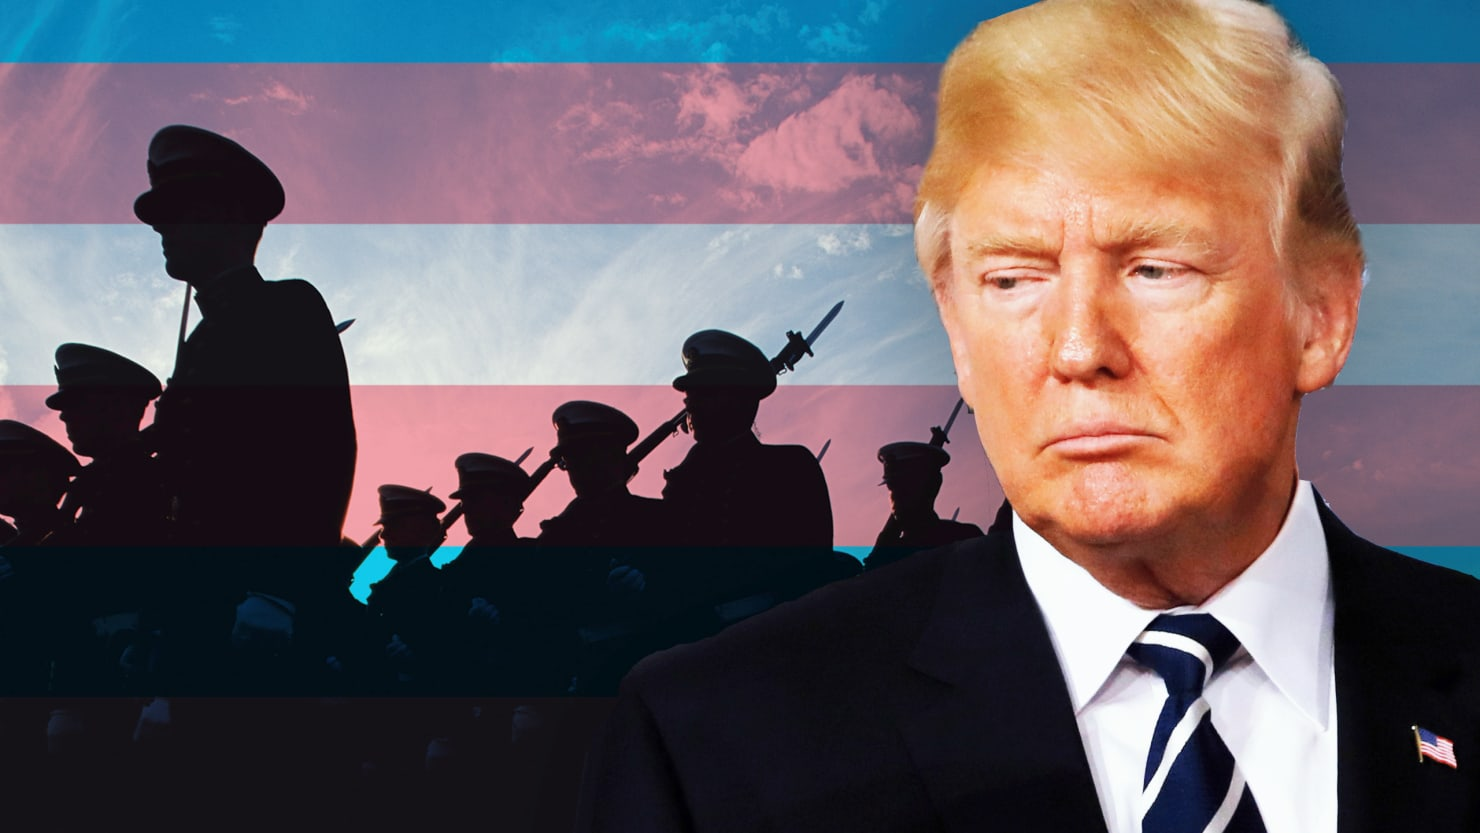 donald trump caters to religious base wants trans ban military